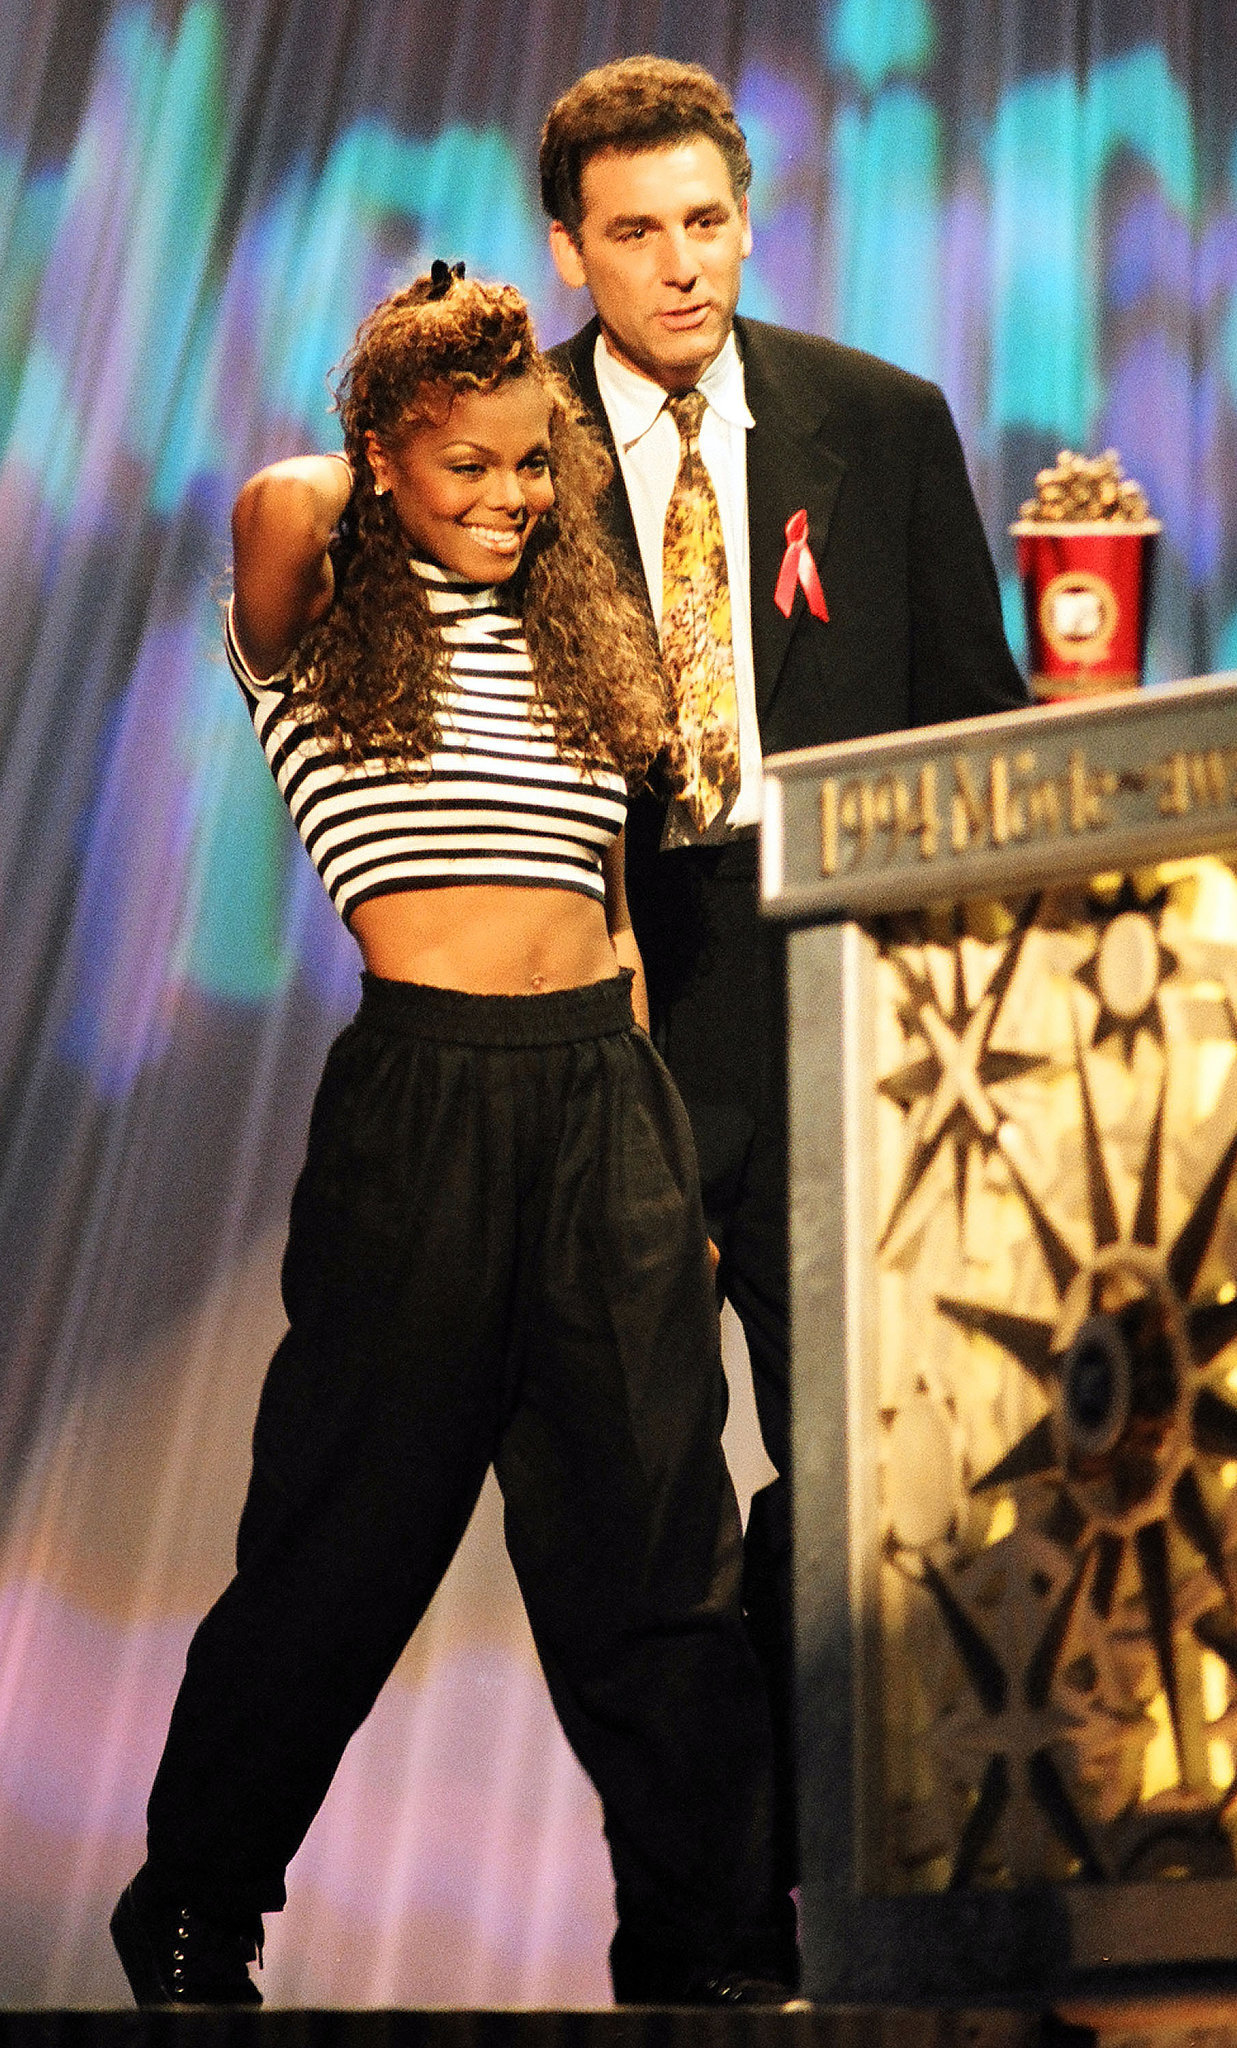 Janet Jackson shared the stage with Seinfeld's Michael Richards.